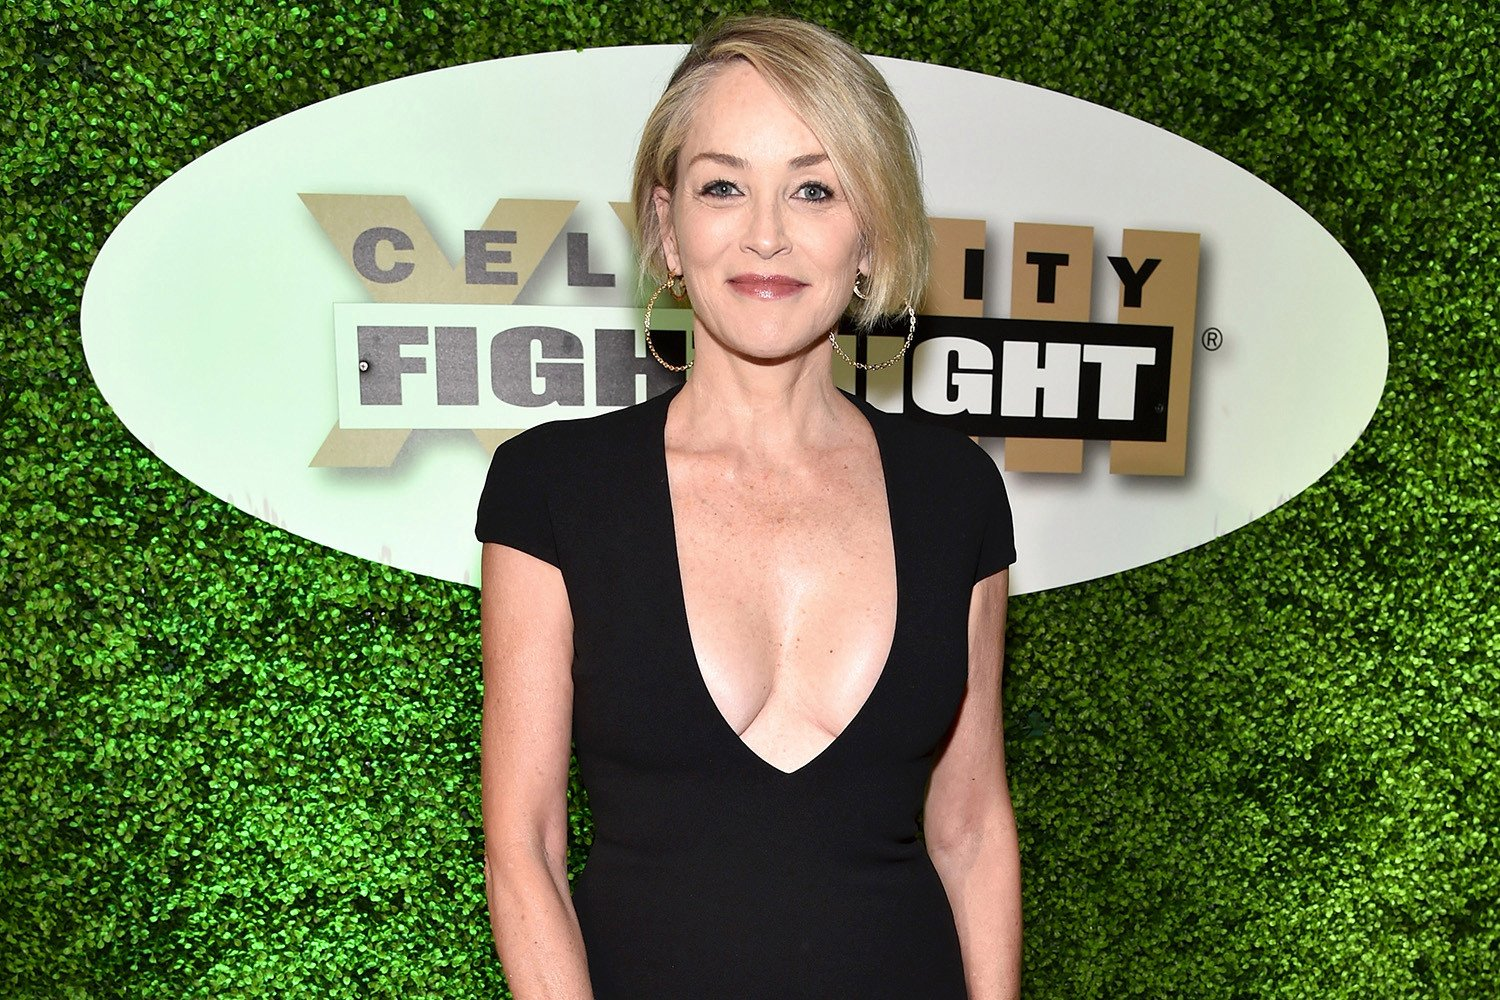 Good luck trying to look like Sharon Stone